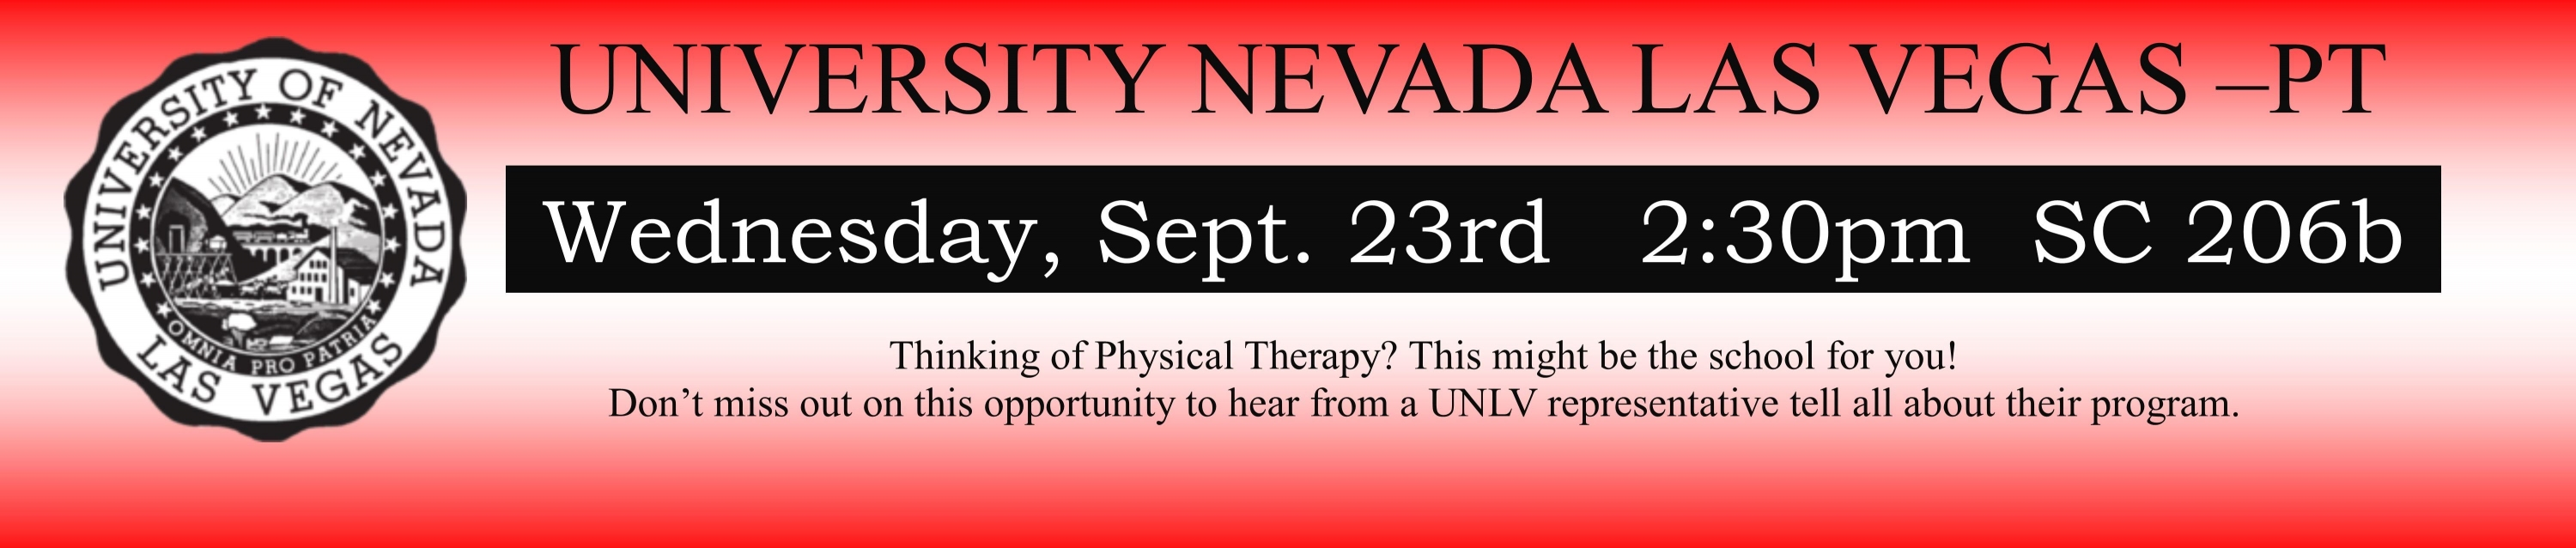 University of Nevada Las Vegas